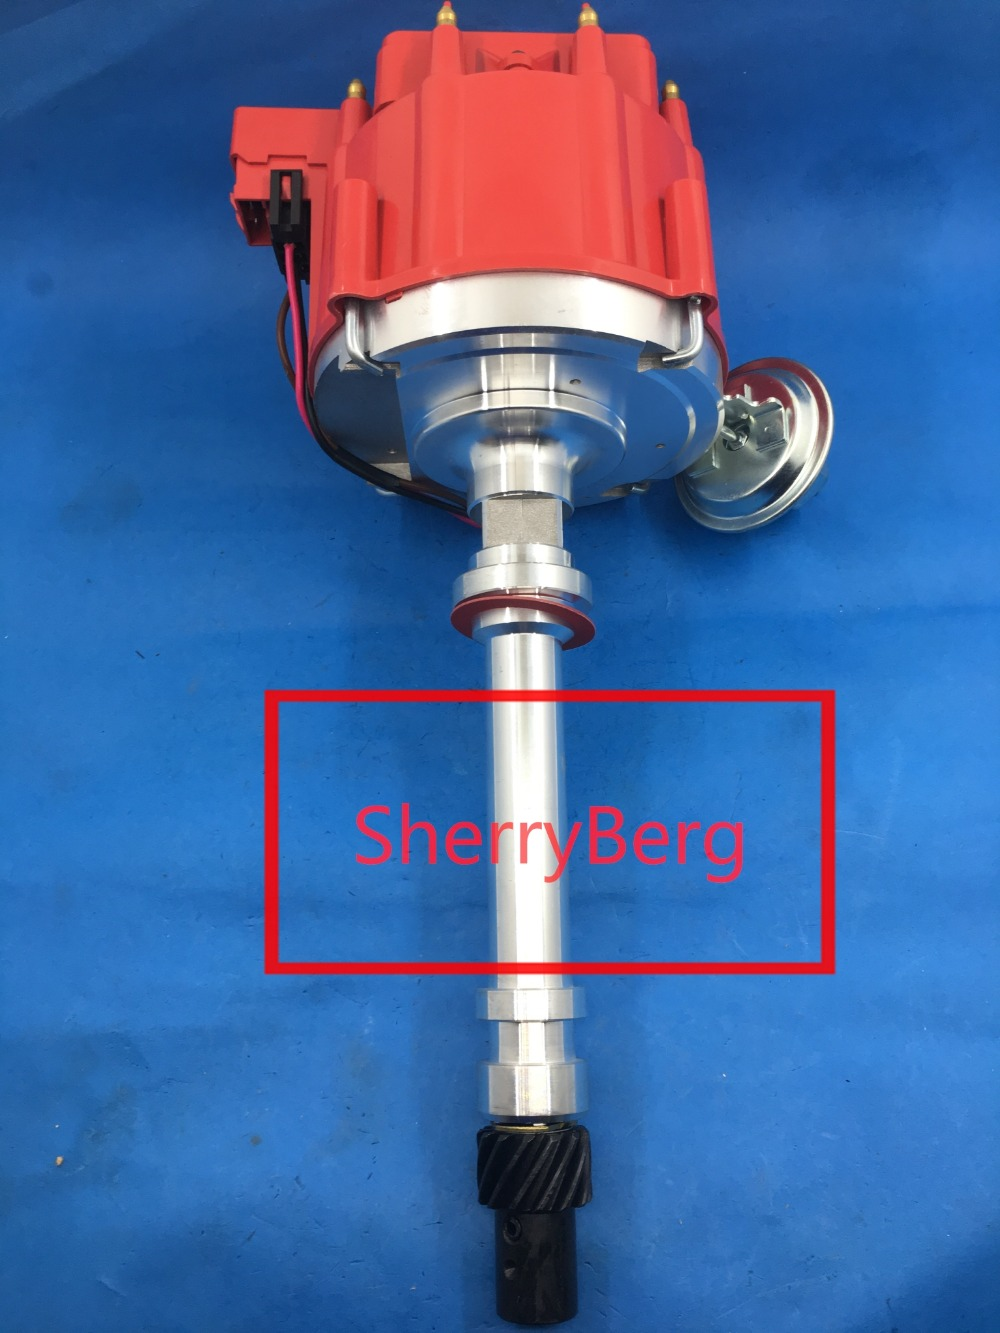 New HEI DISTRIBUTOR ELECTRIC fit CHEVROLET 305 350 400 C.I 8 CYL BUICK GMC Small & Big Block Chevy 305 327 350 454 Small Base